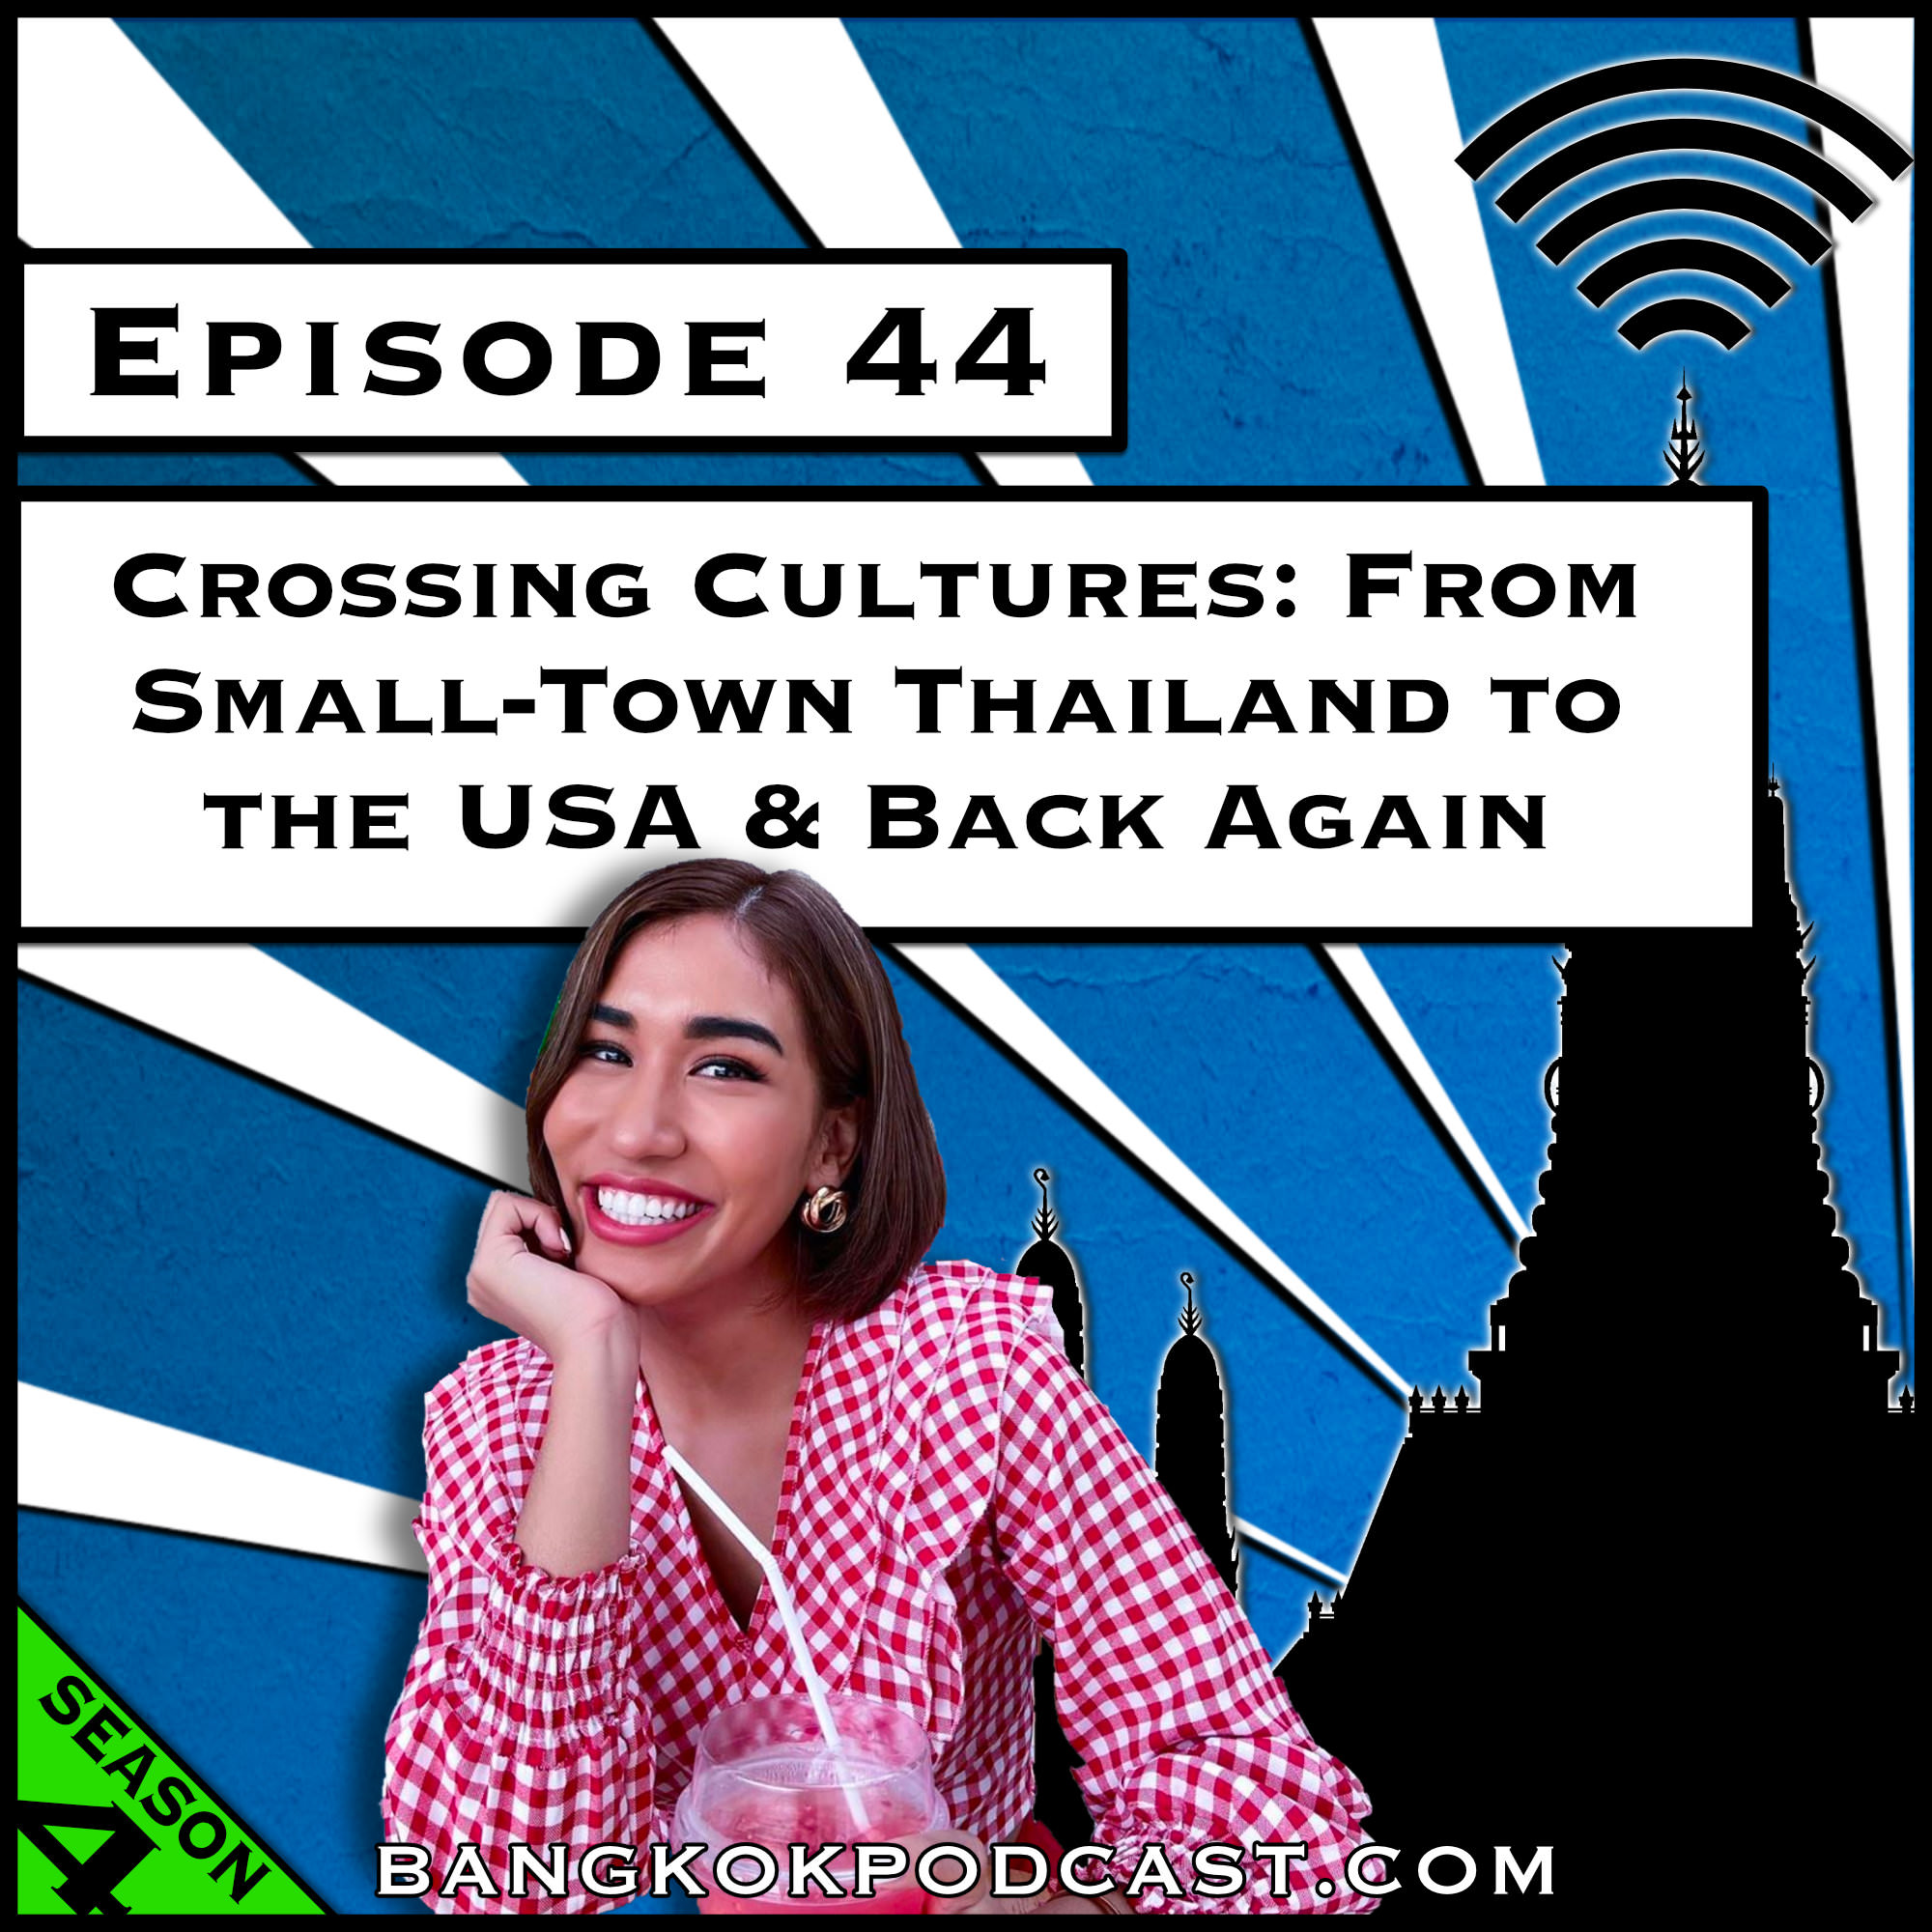 Crossing Cultures: From Small-Town Thailand to the USA & Back Again [Season 4, Episode 44]